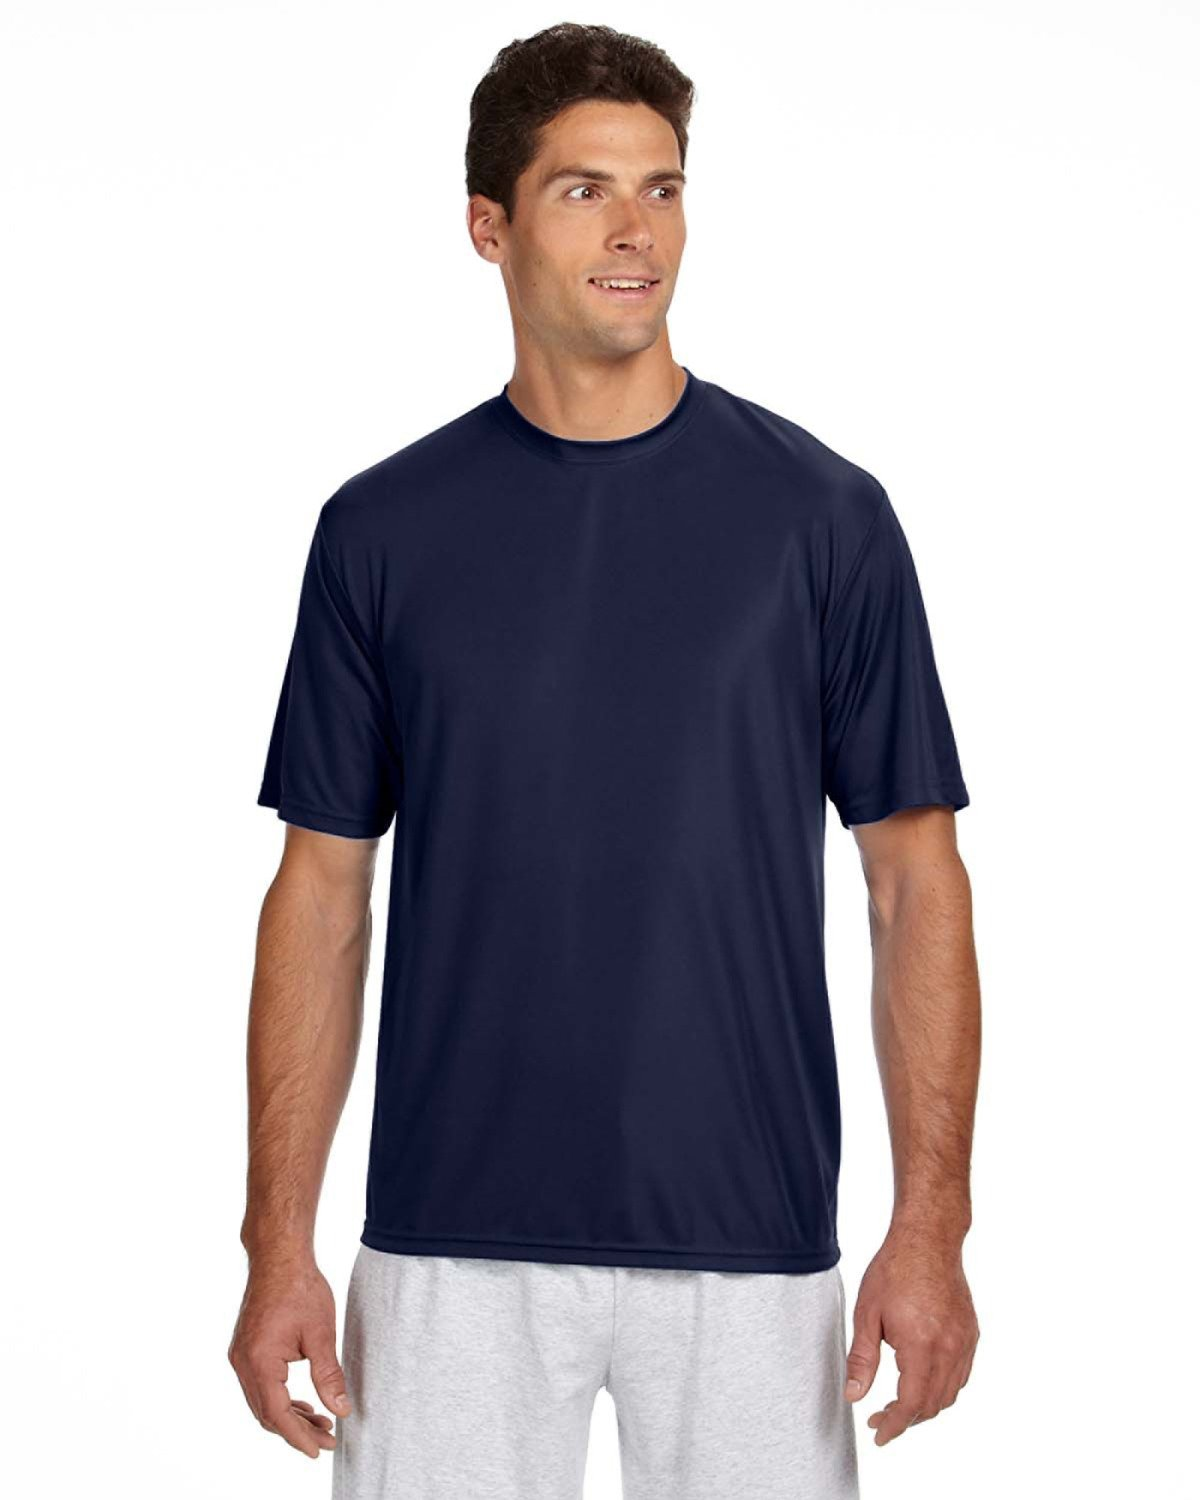 A4 Men's Cooling Performance T-Shirt NAVY